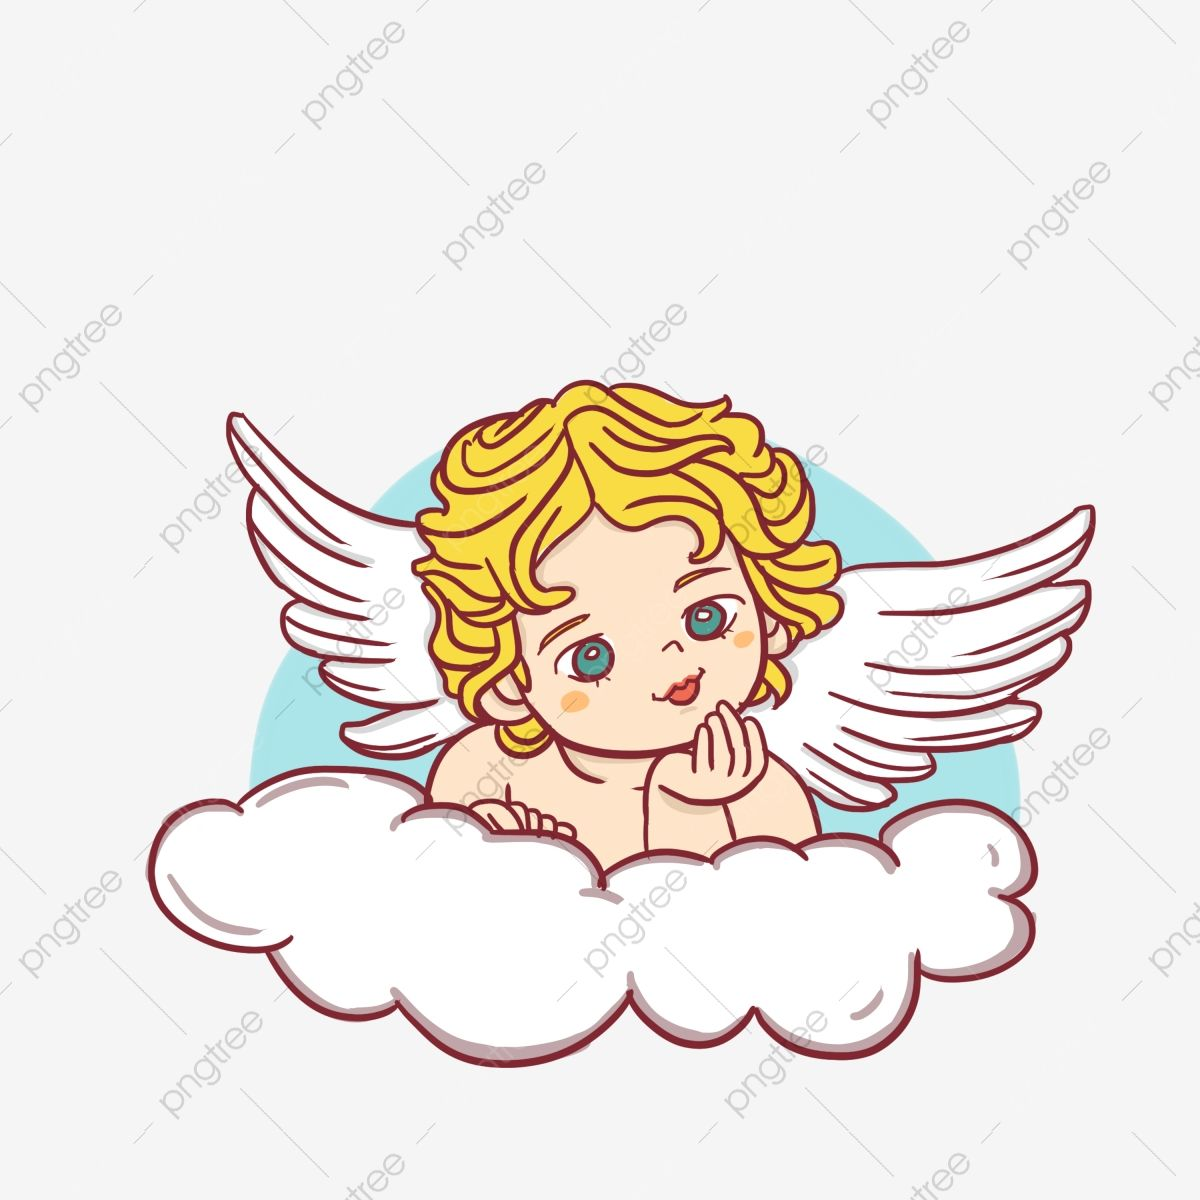 Cartoon Lovely Blond Angel Angel Clipart Little Girl Cartoon Character Png Transparent Clipart Image And Psd File For Free Download Angel Cartoon Cute Pink Background Angel Vector